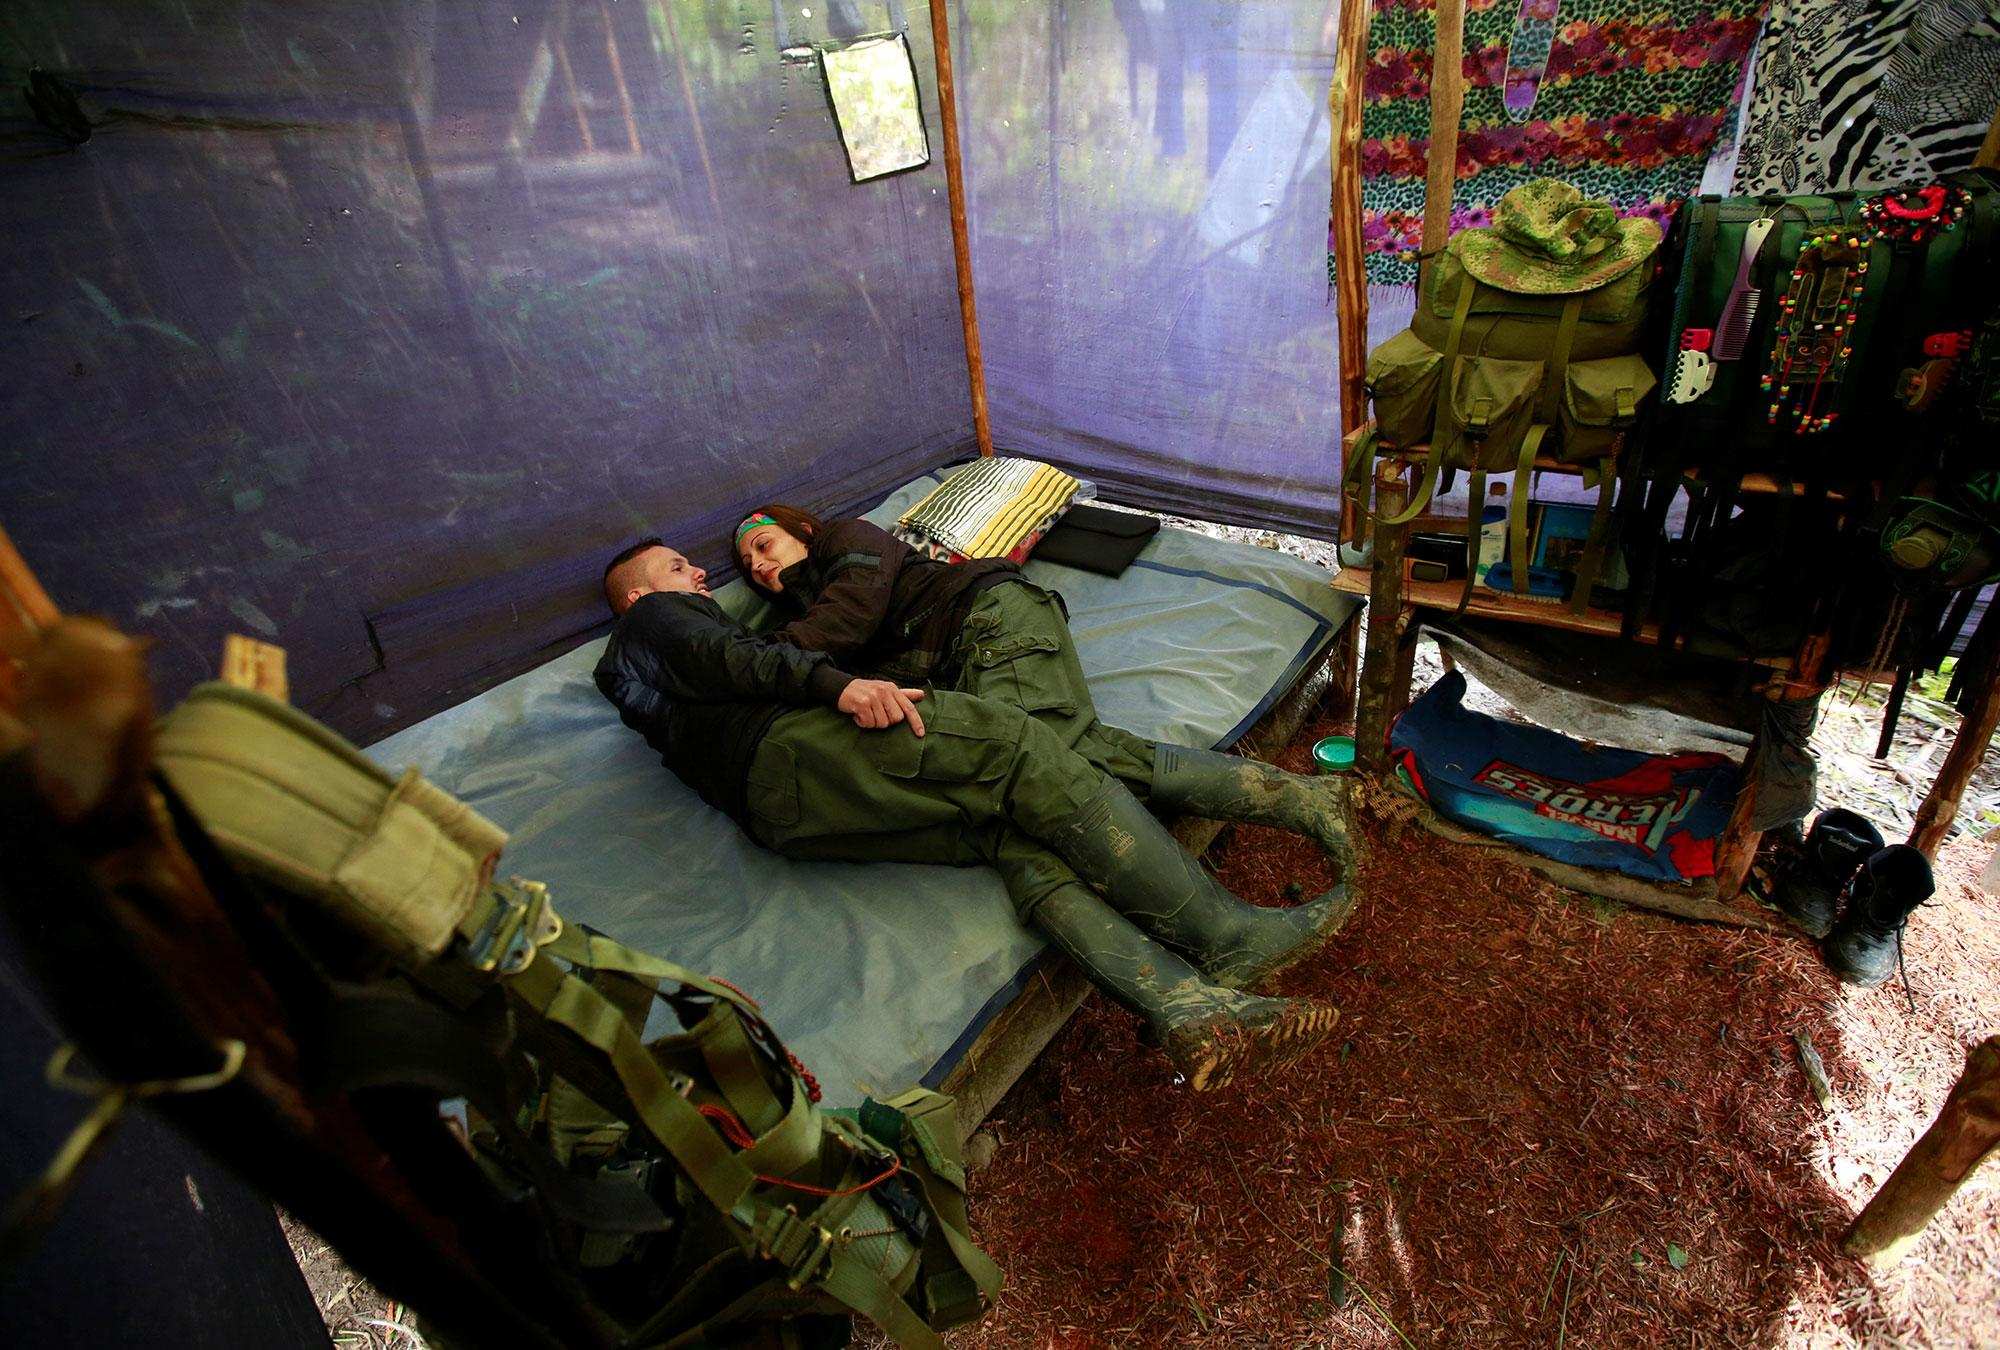 <p>A couple from the 51st Front of the Revolutionary Armed Forces of Colombia (FARC) rest inside a tent at a camp in Cordillera Oriental, Colombia, August 16, 2016. (John Vizcaino/Reuters) </p>